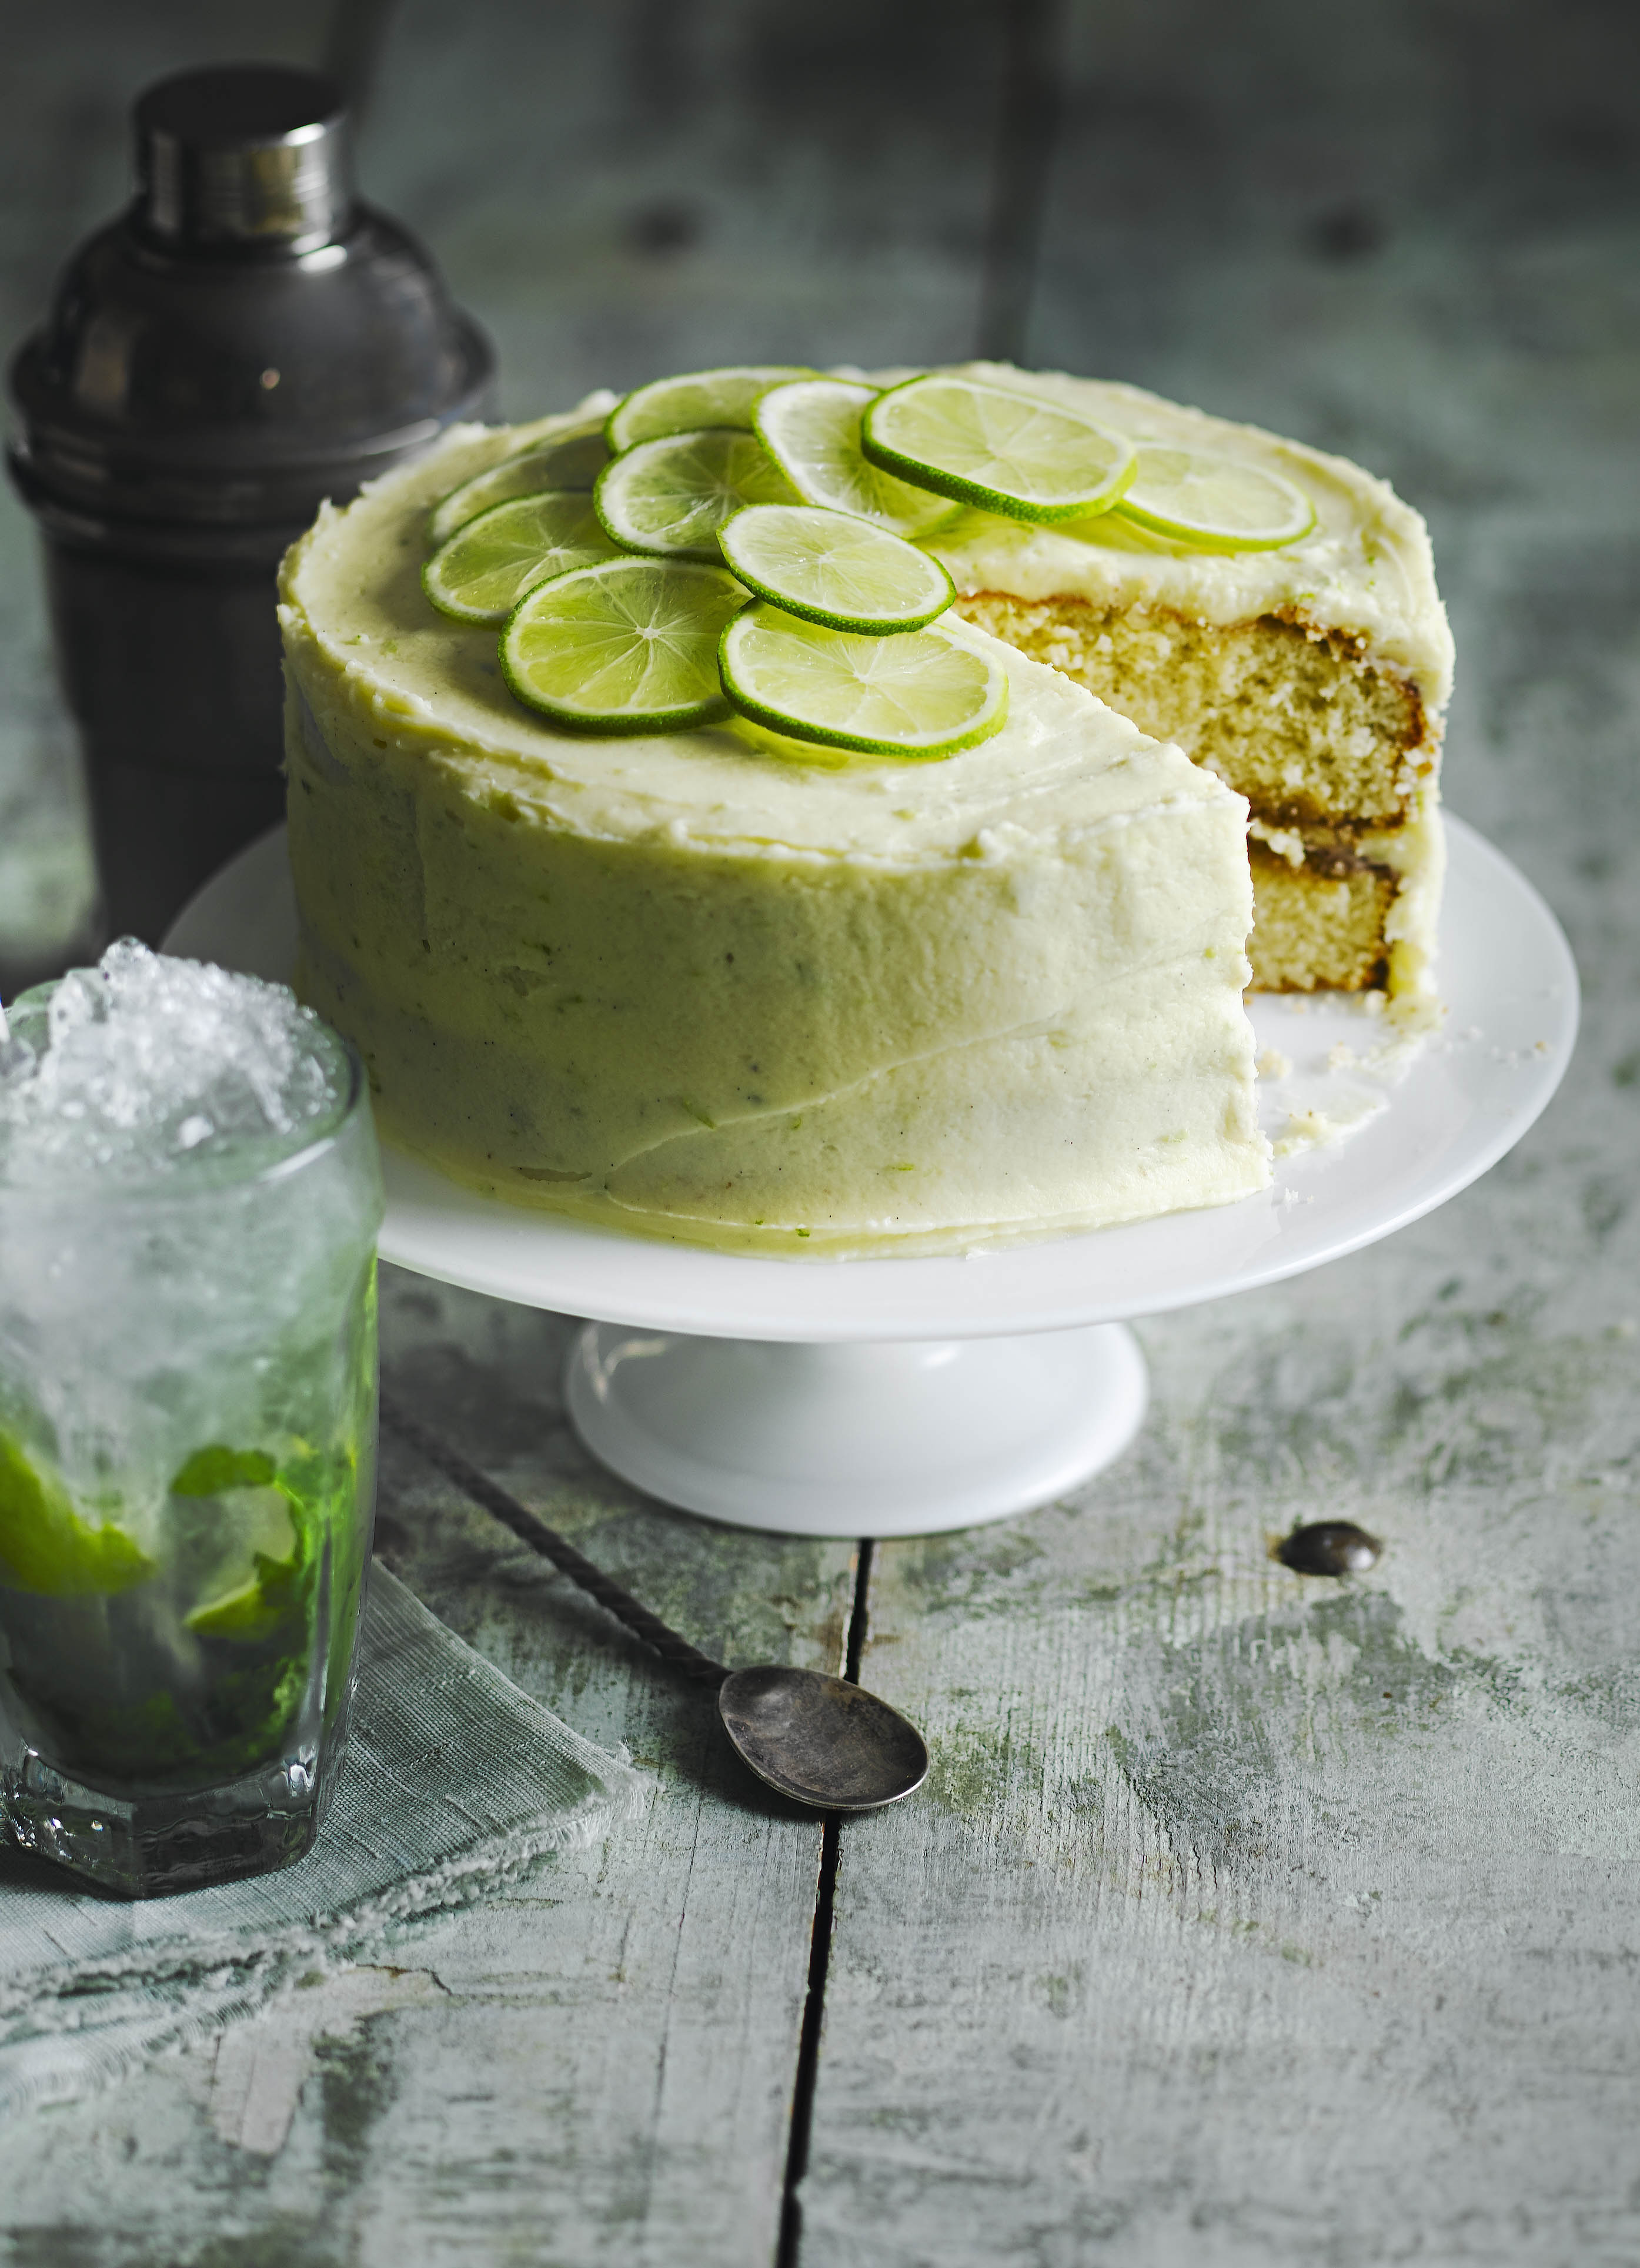 17 Best Alcohol Cake Recipes for Baking with Alcohol